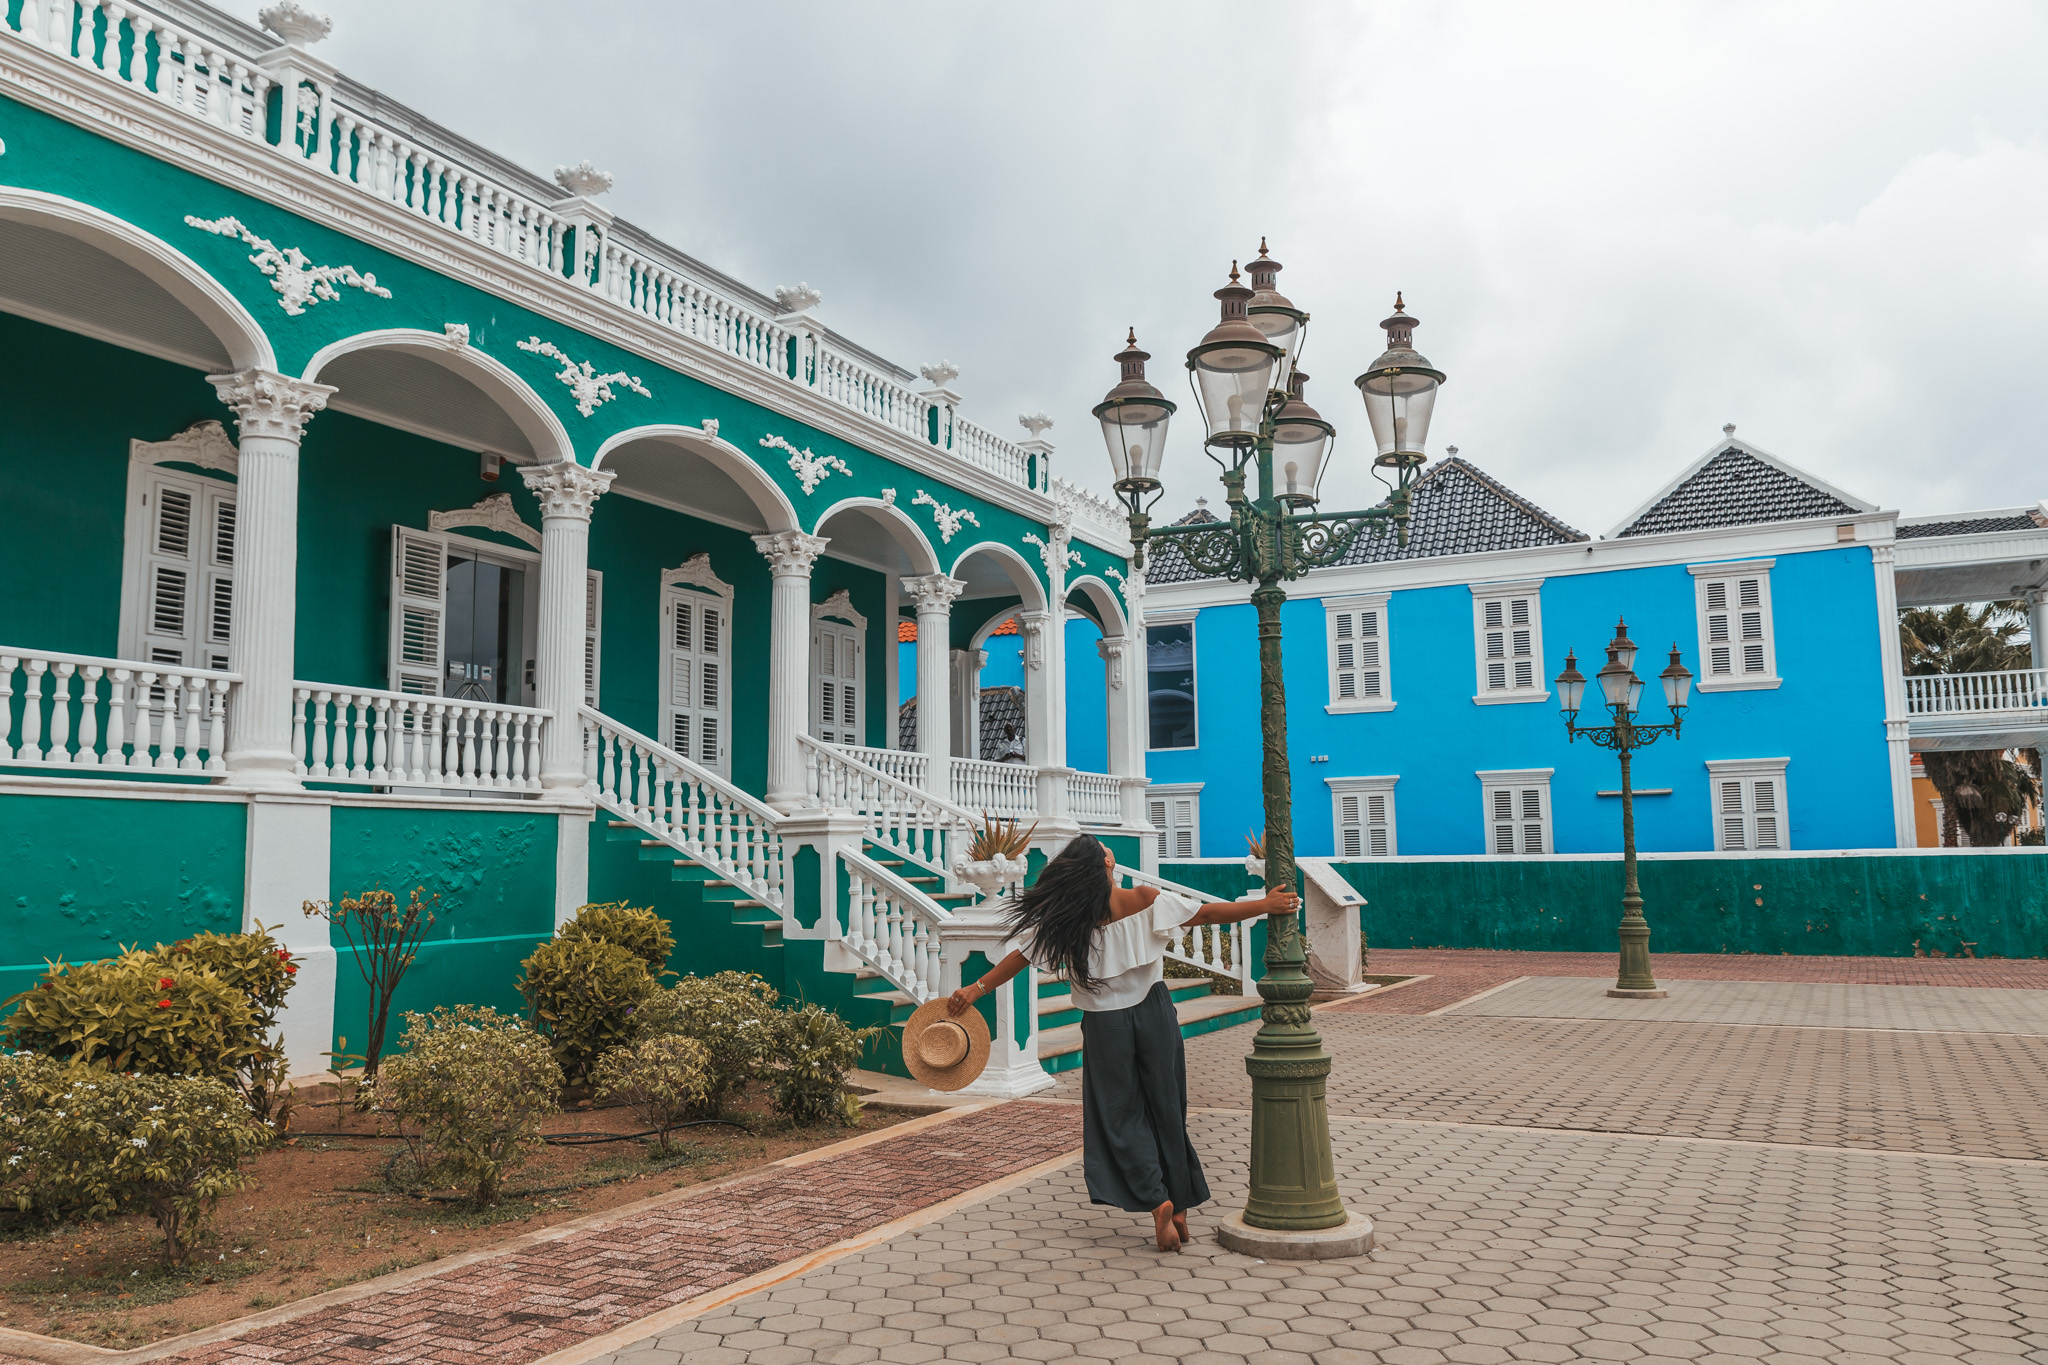 The famous Wedding Cake House of Willemstad, Curaçao // 20 Photos to Show You Why Curaçao Needs to Be On Your Travel Radar // www.readysetjetset.net #readysetjetset #curacao #caribbean #beach #ocean #paradise #travel